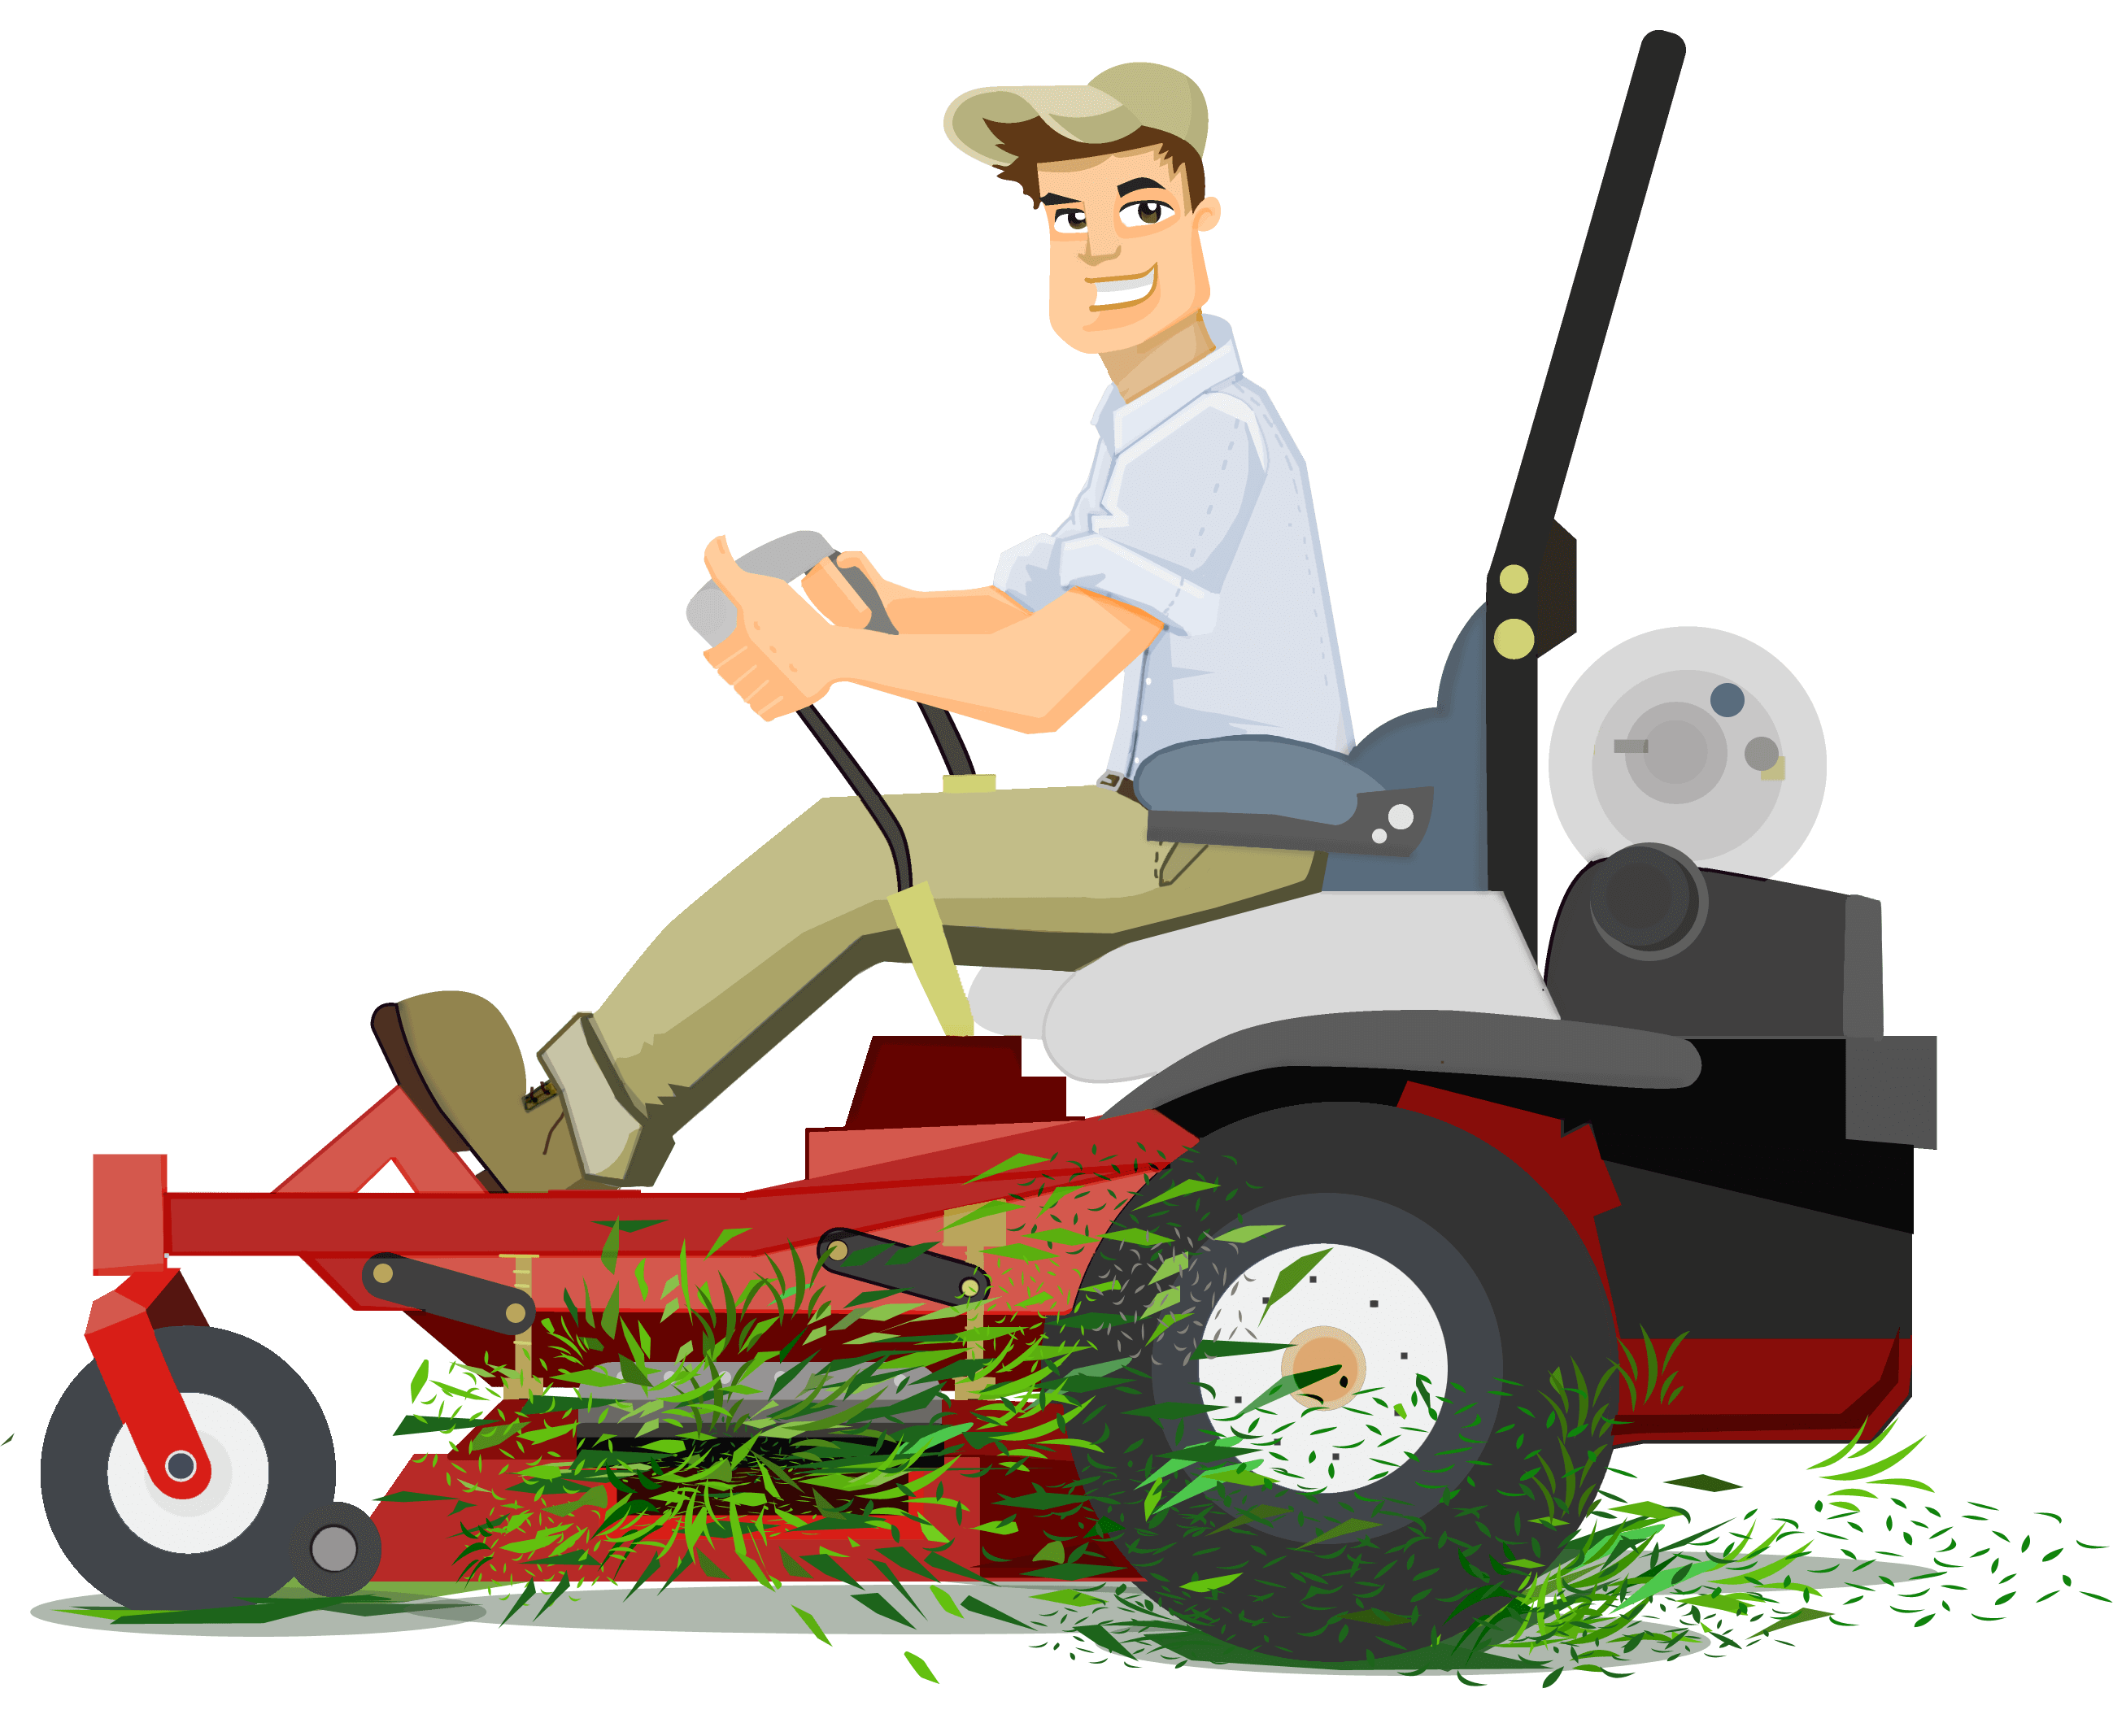 clip art royalty free library Lawn care clipart lawn service. Mow the png transparent.